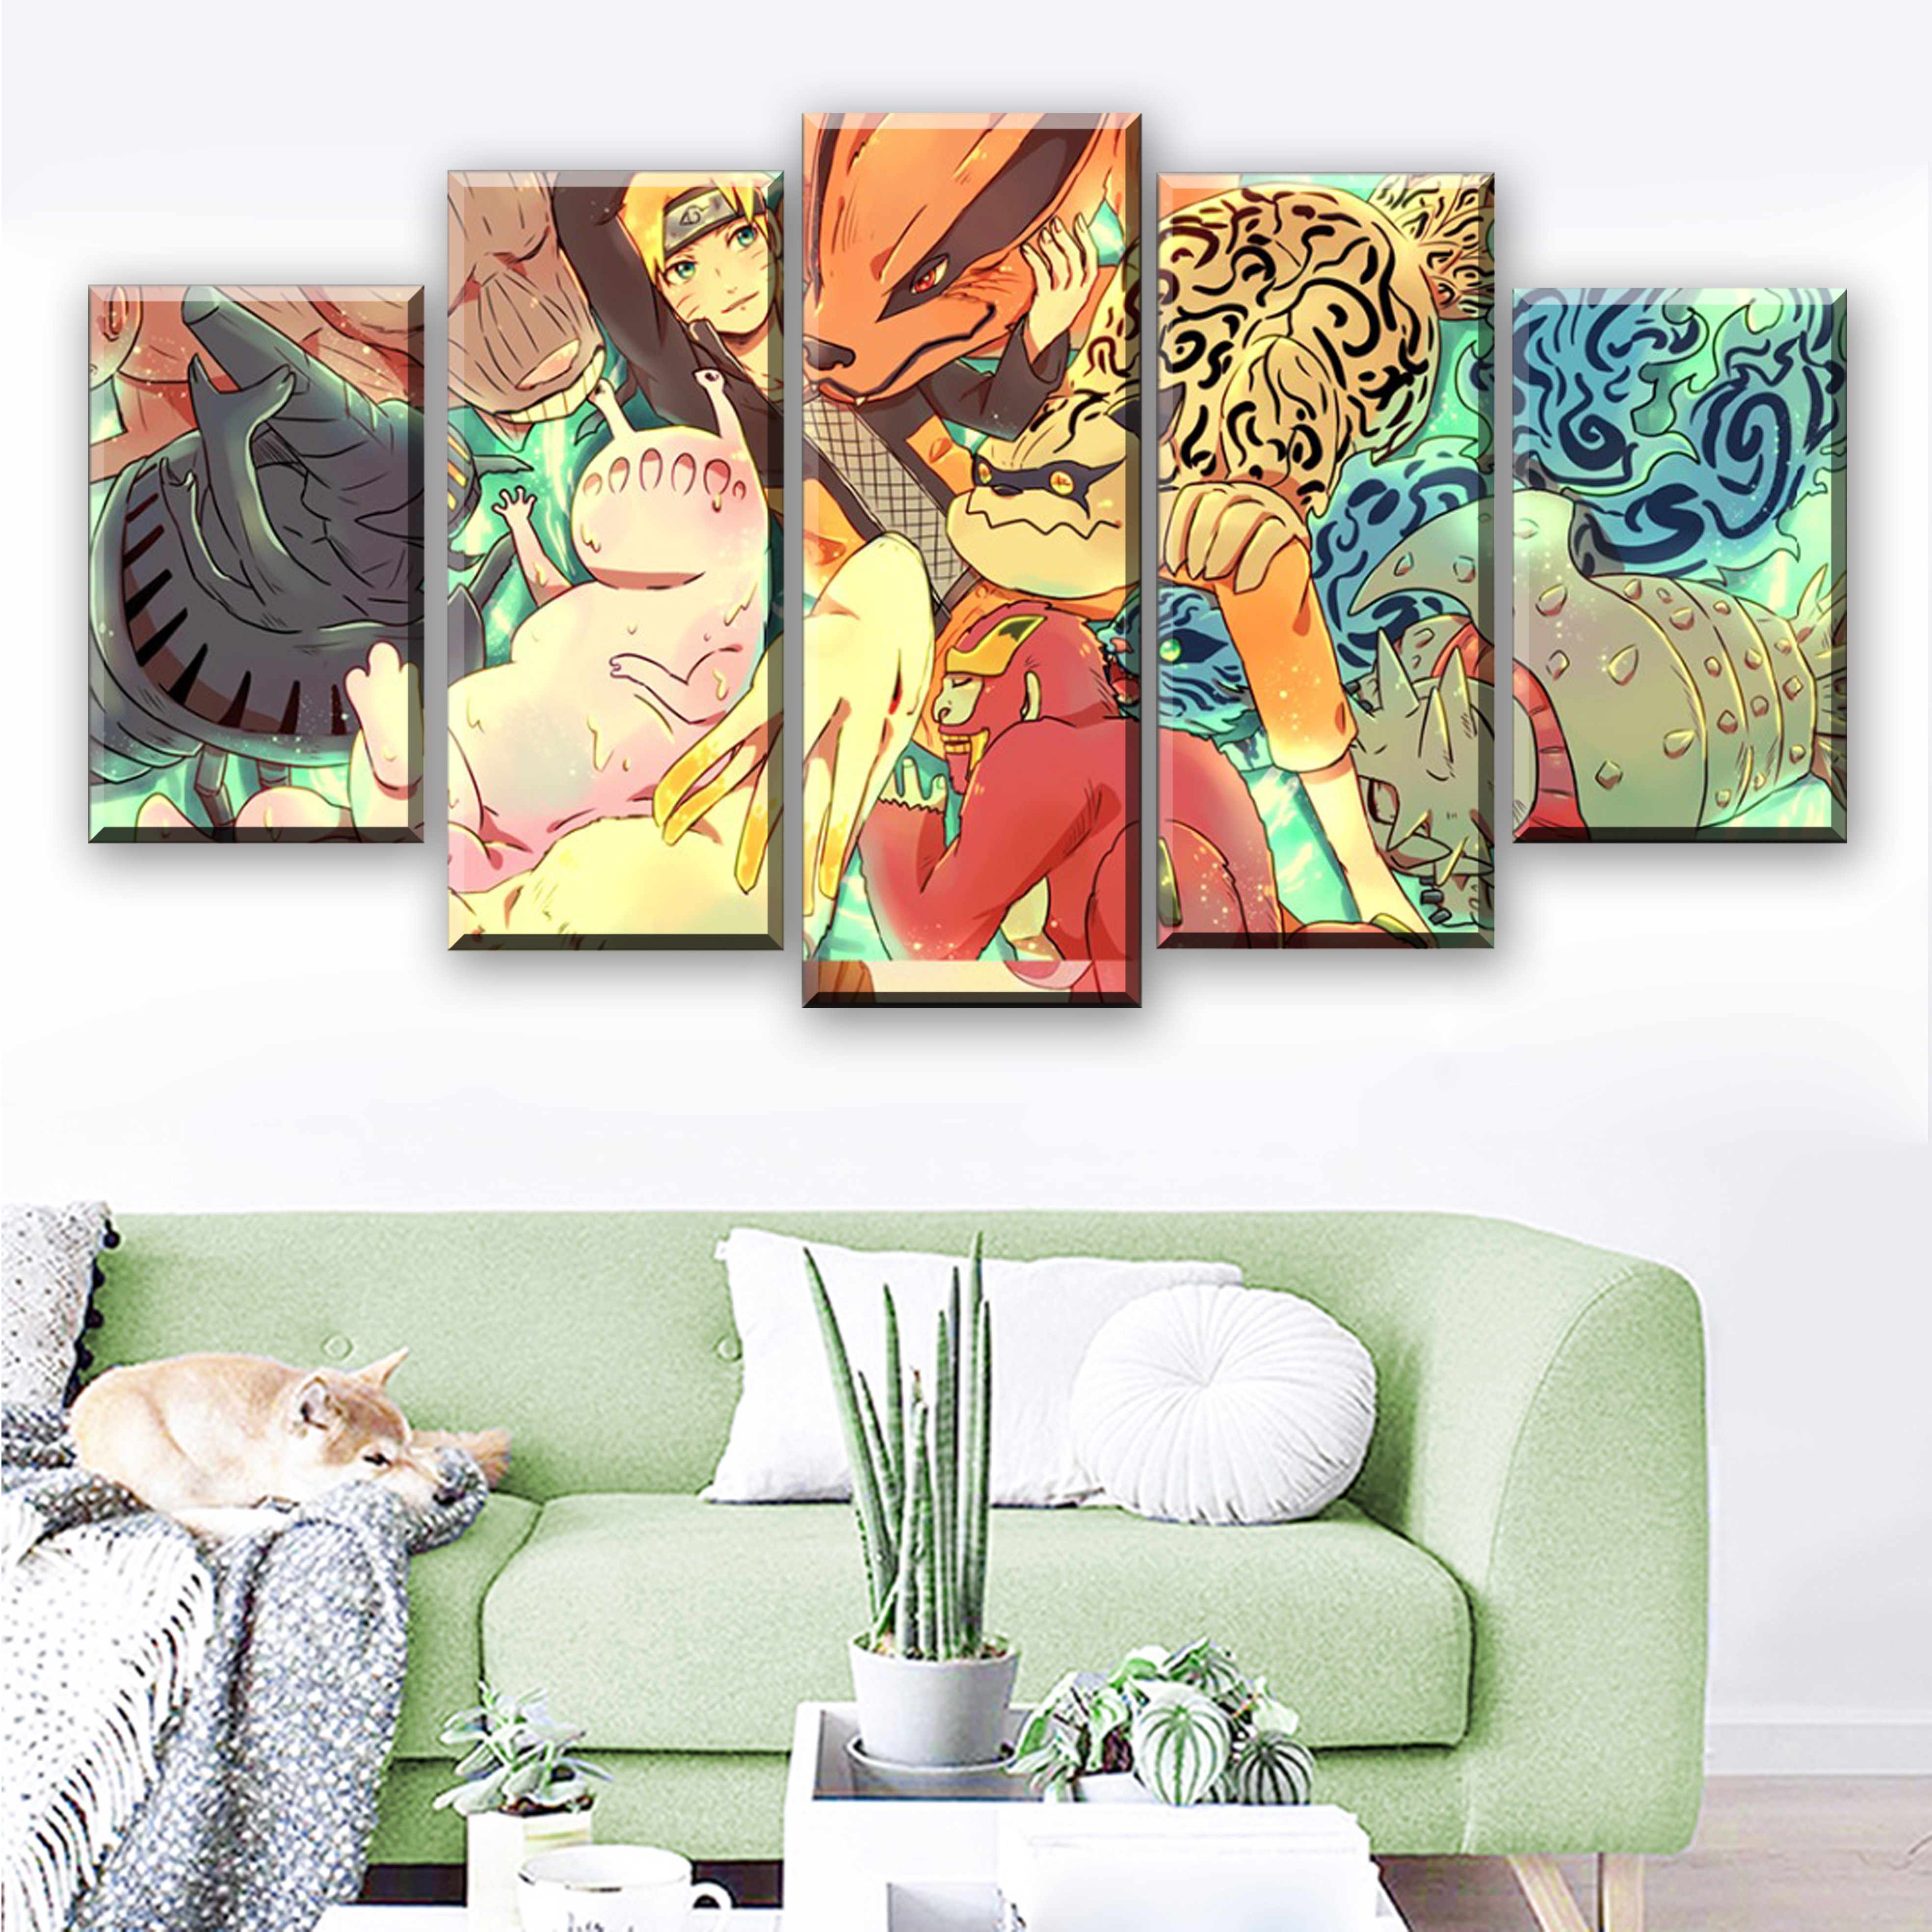 5 Pieces Canvas Painting Naruto Poster Anime Quadri Su Tela Per Soggiorno Pintura Posters And Prints Living Room Drop Shipping in Painting Calligraphy from Home Garden